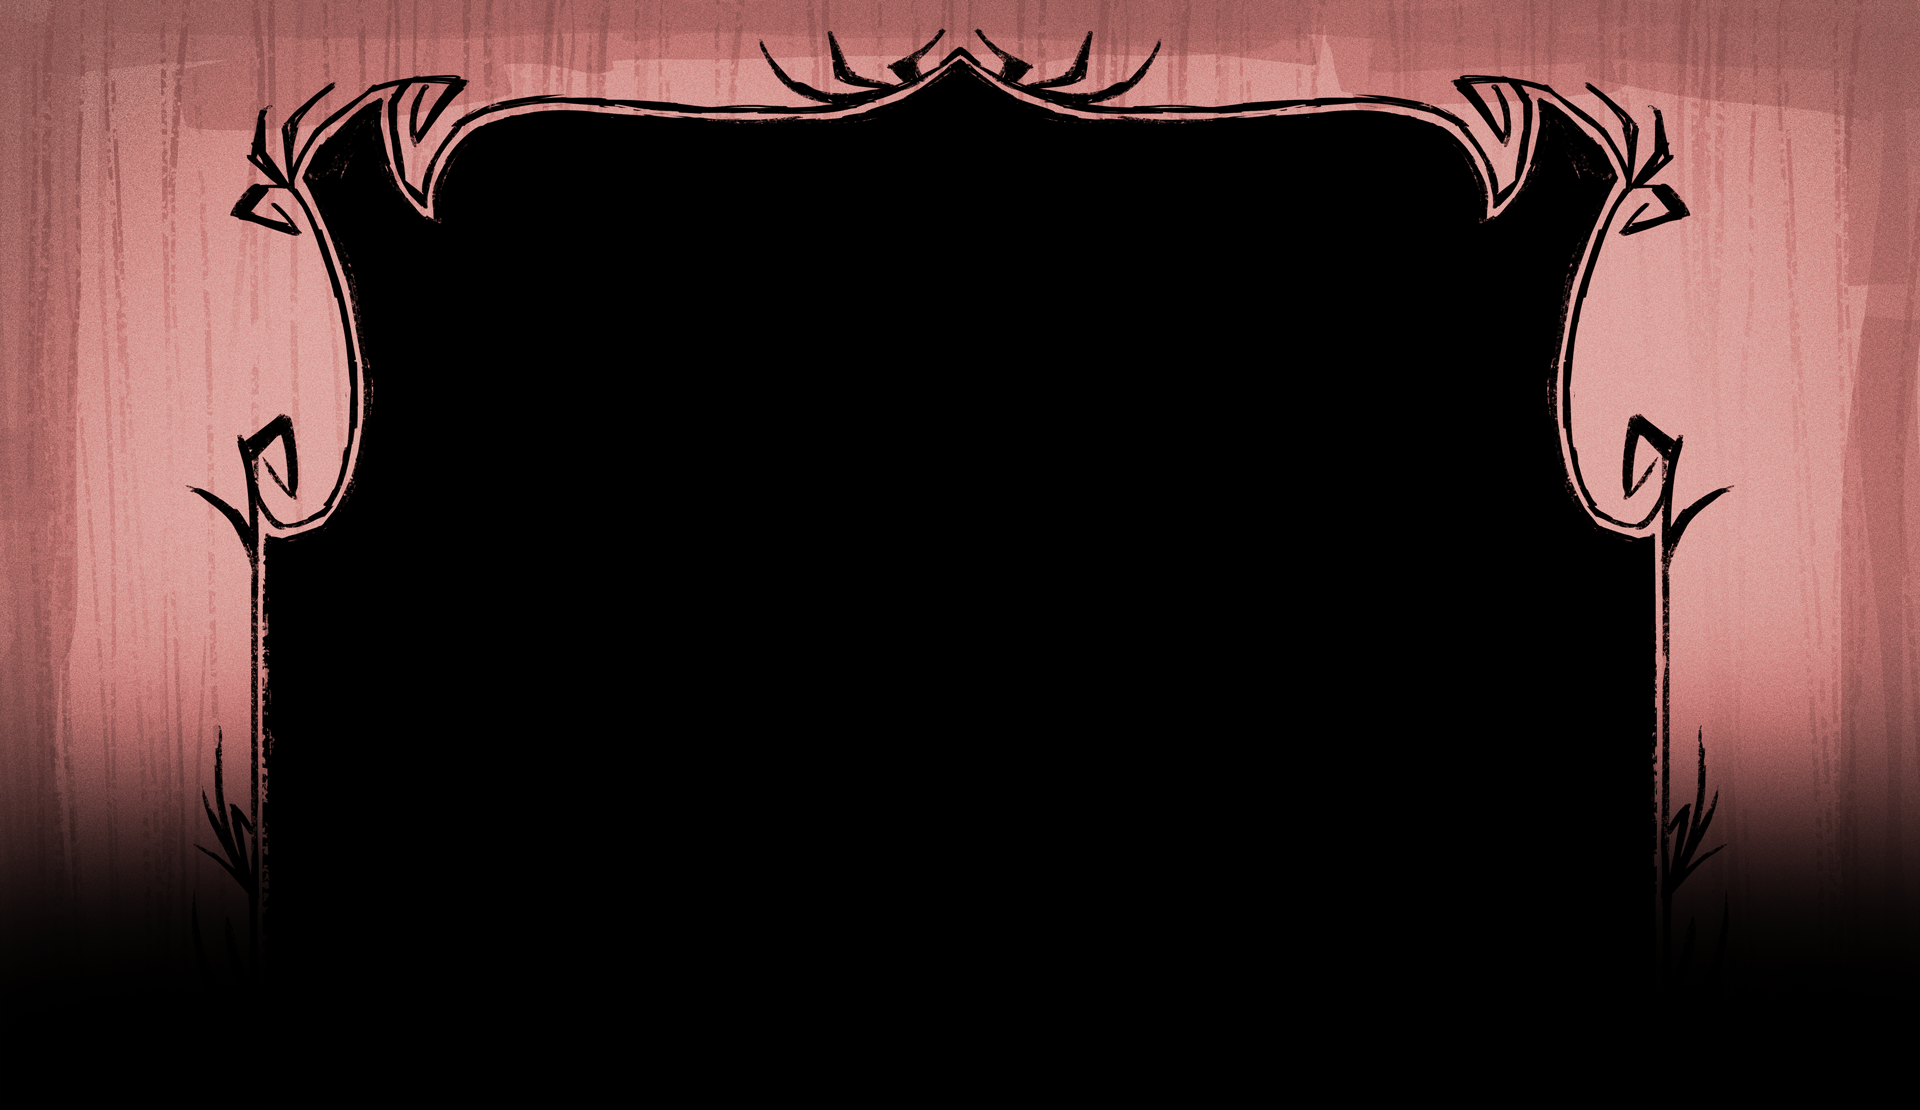 Don't Starve Background Titlecard.png